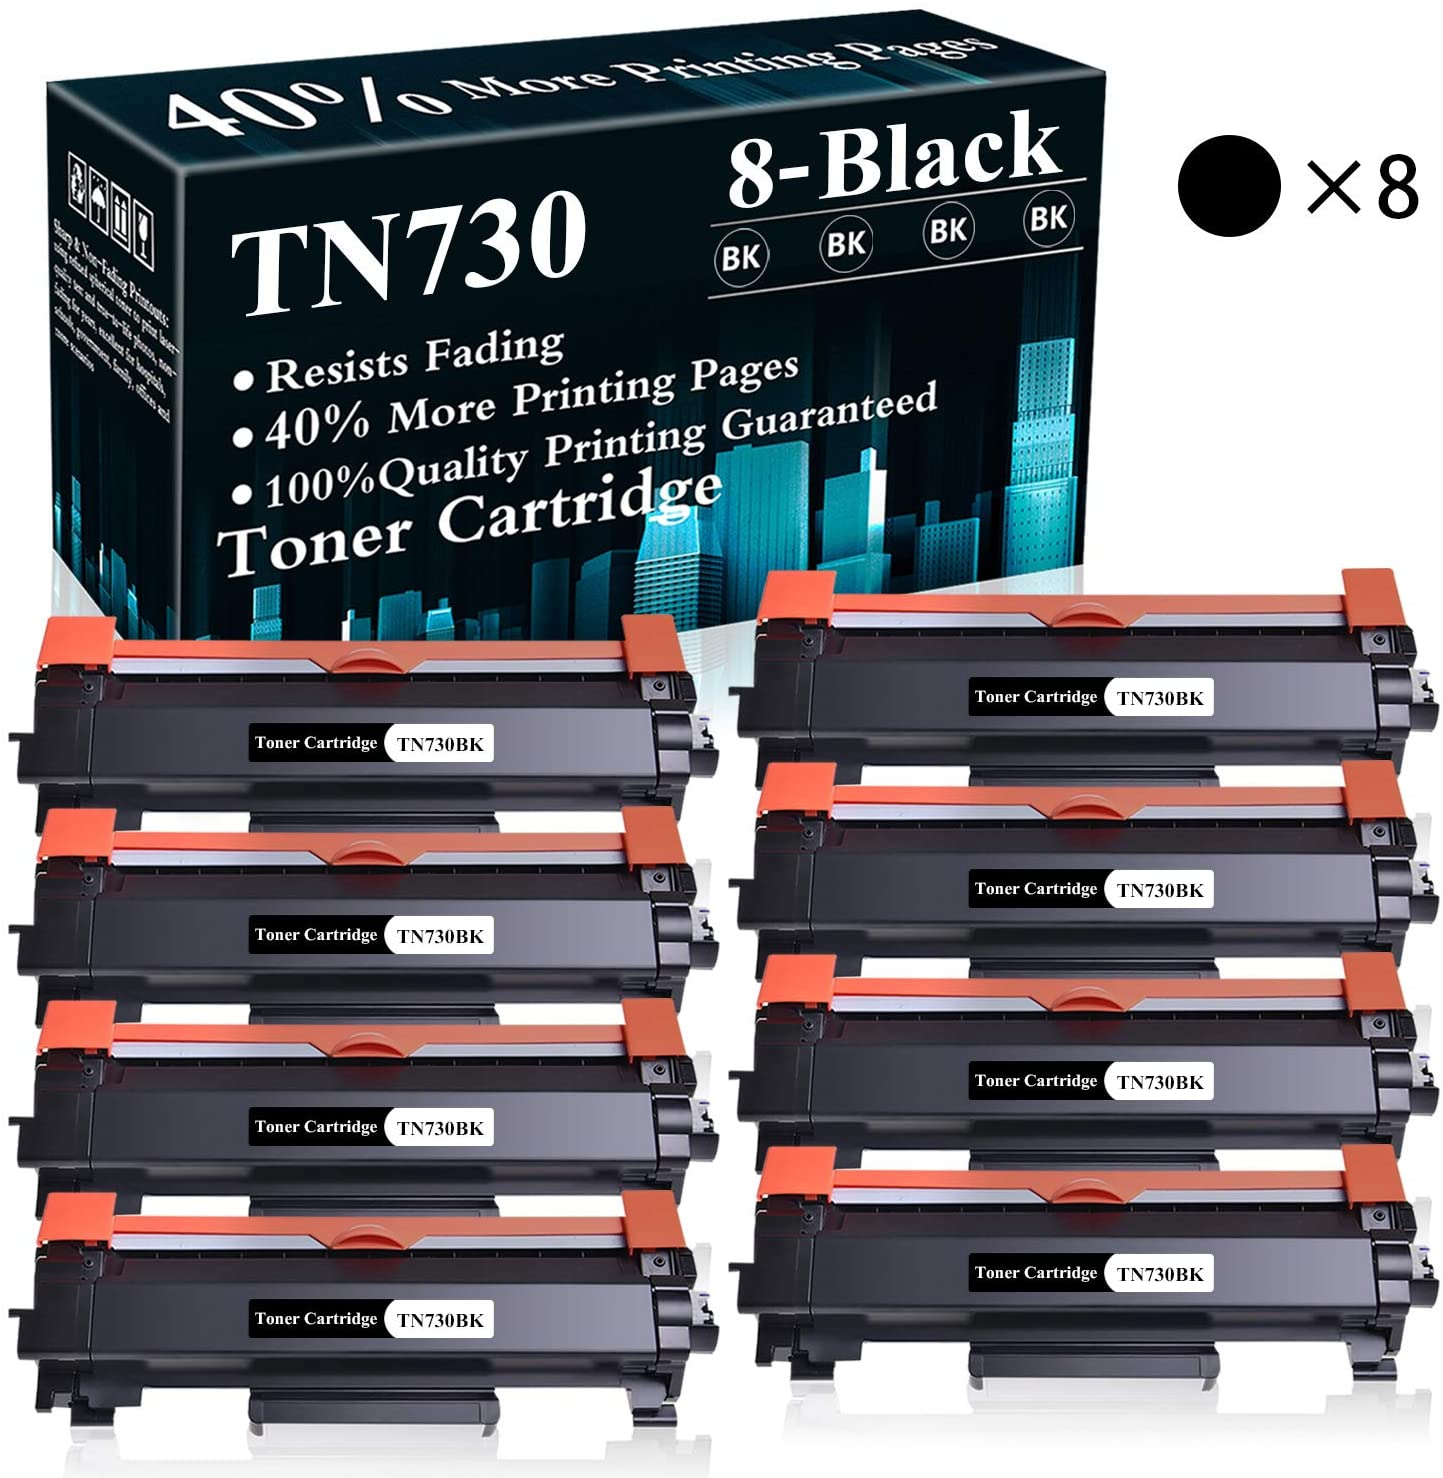 8 Black TN730 Toner Cartridge Replacement for Brother DCP-L2550DW MFC-L2710DW L2750DW L2750DWXL HL-L2350DW HL-L2370DW L2390DW L2395DW Printer,Sold by TopInk